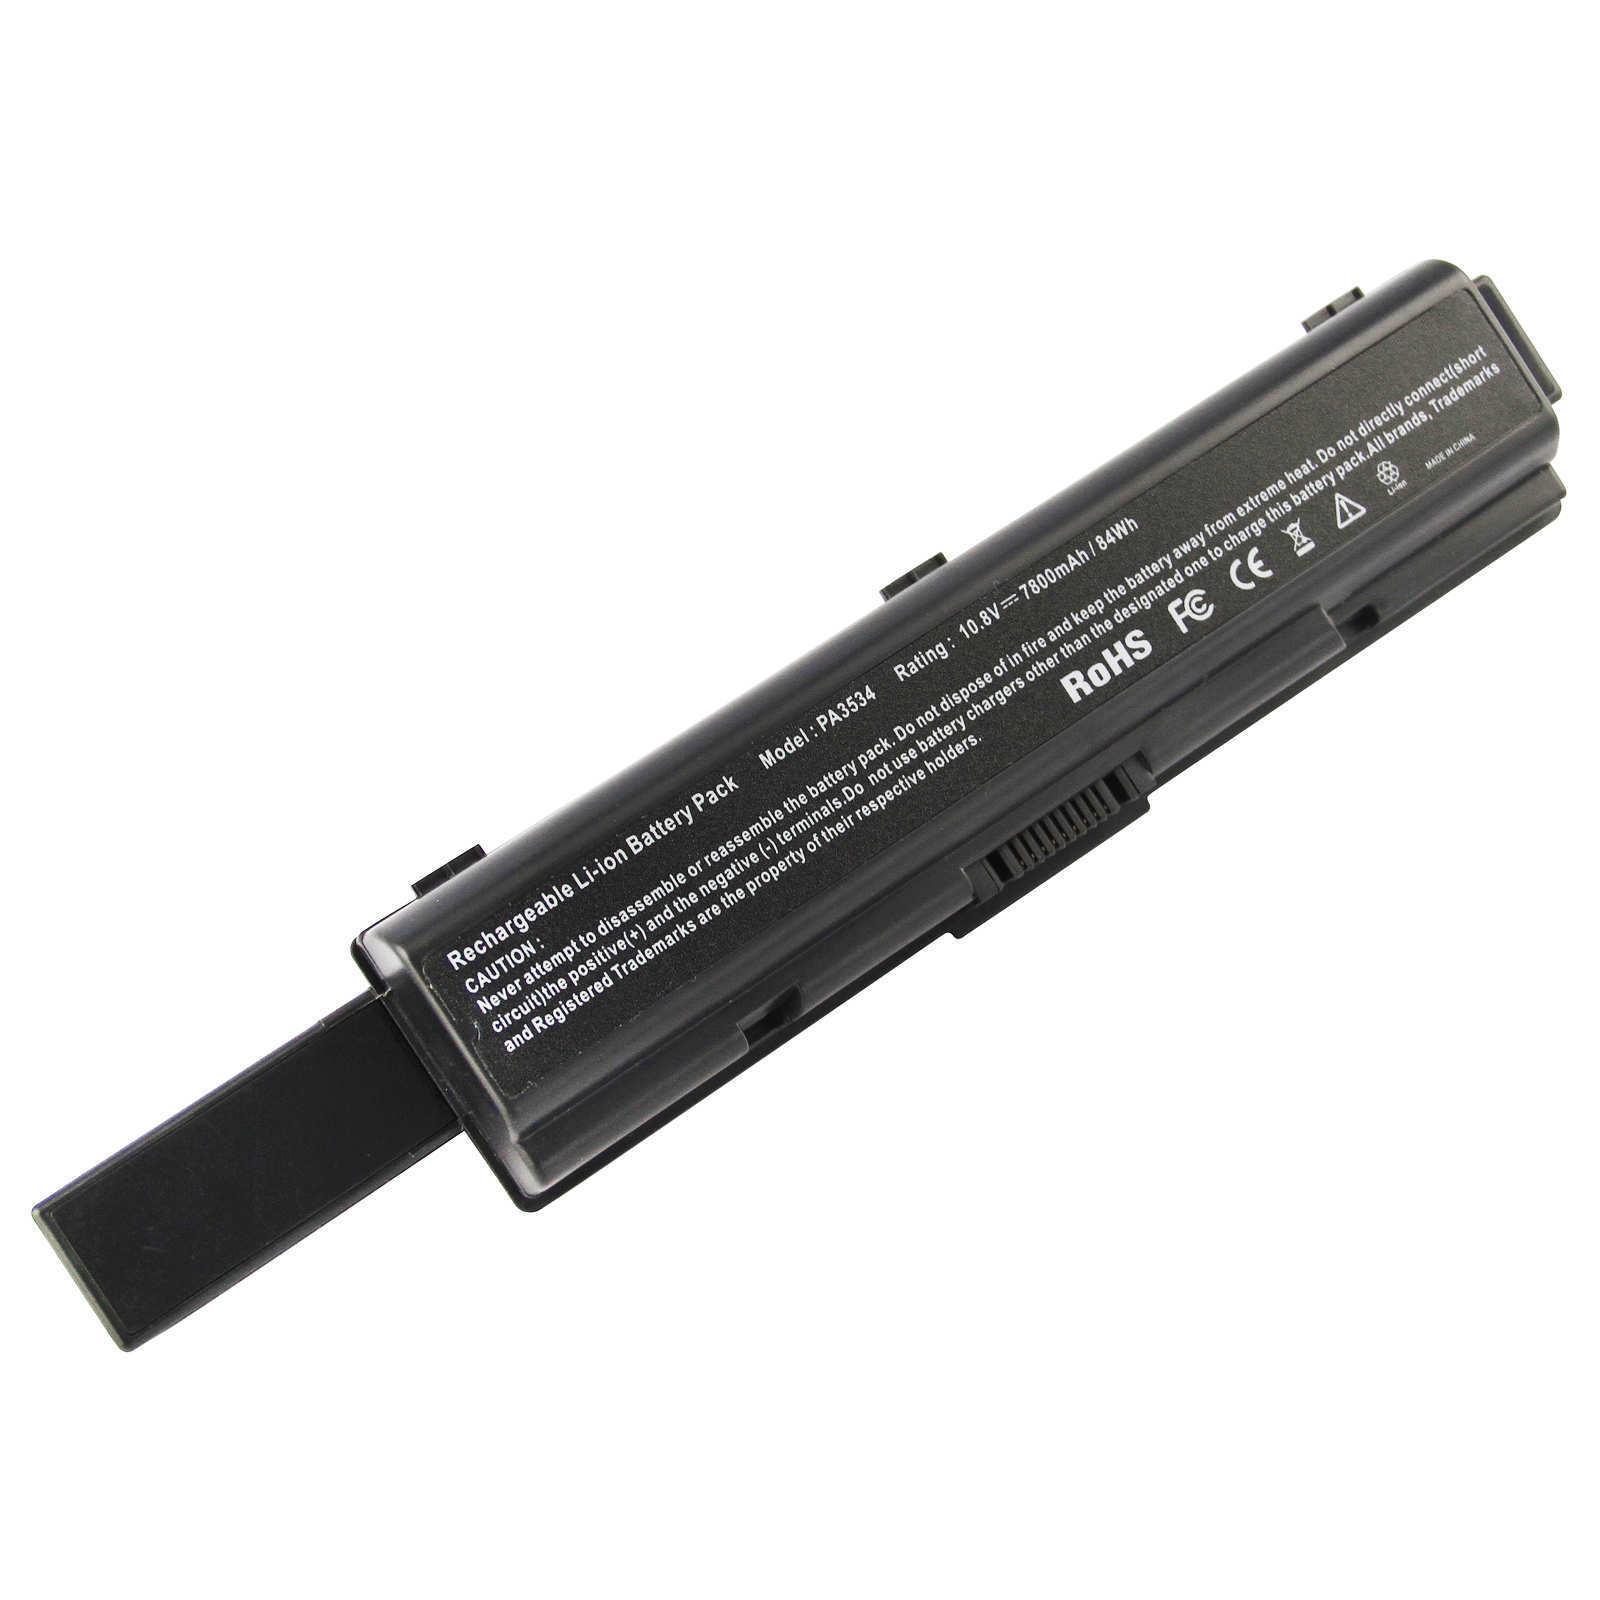 Replacement Toshiba Satellite A205-S5825 Battery